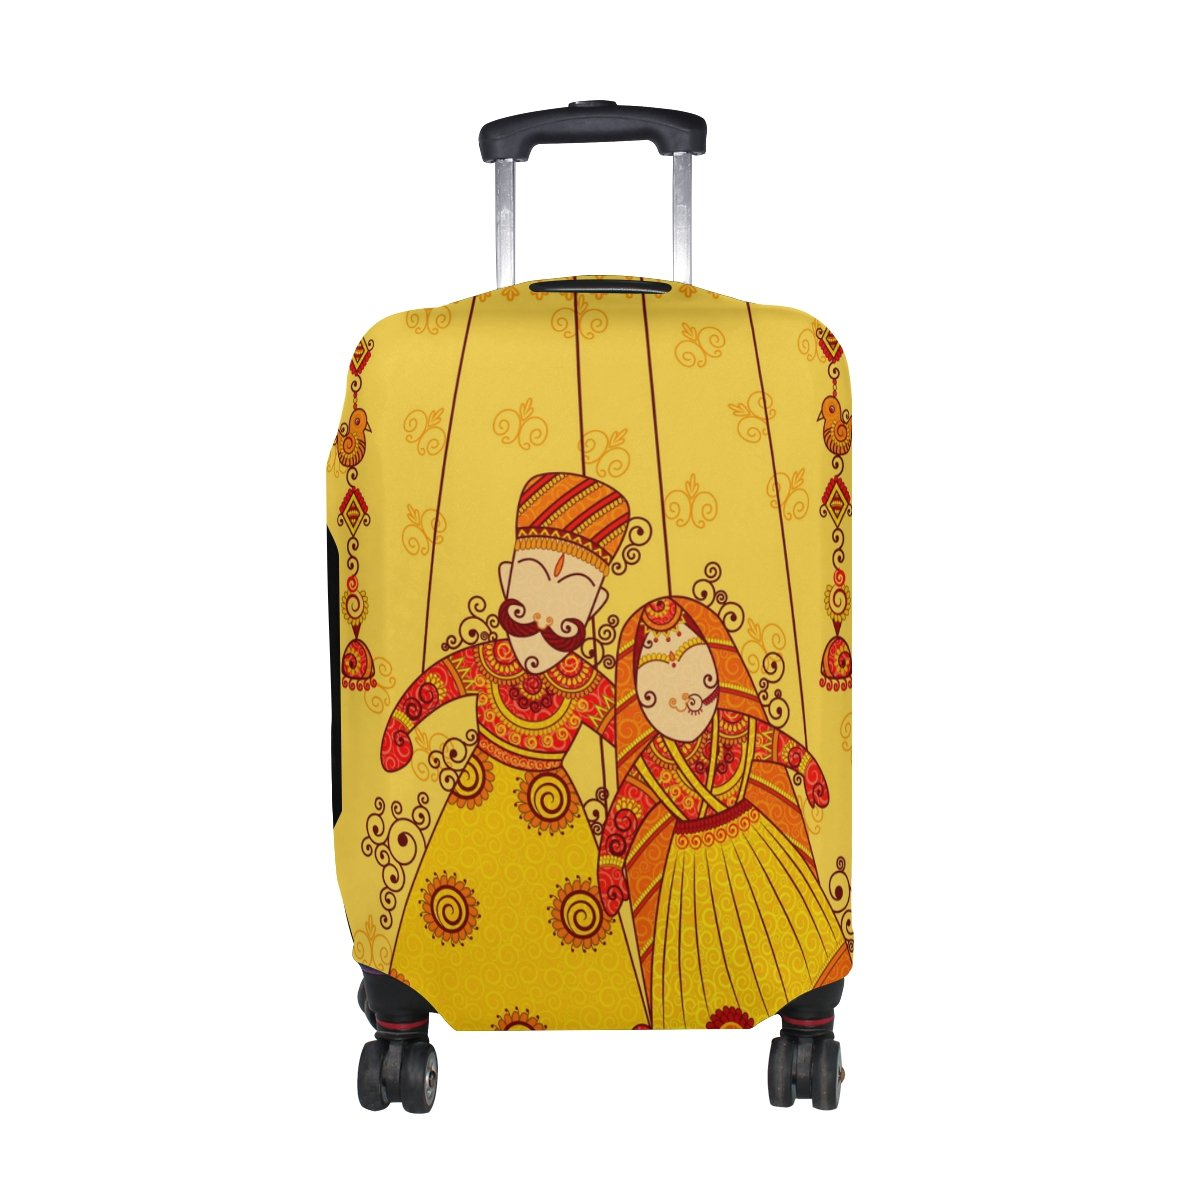 U LIFE Vintage Indian Lotus Wedding Luggage Suitcase Cover Protector for Travel